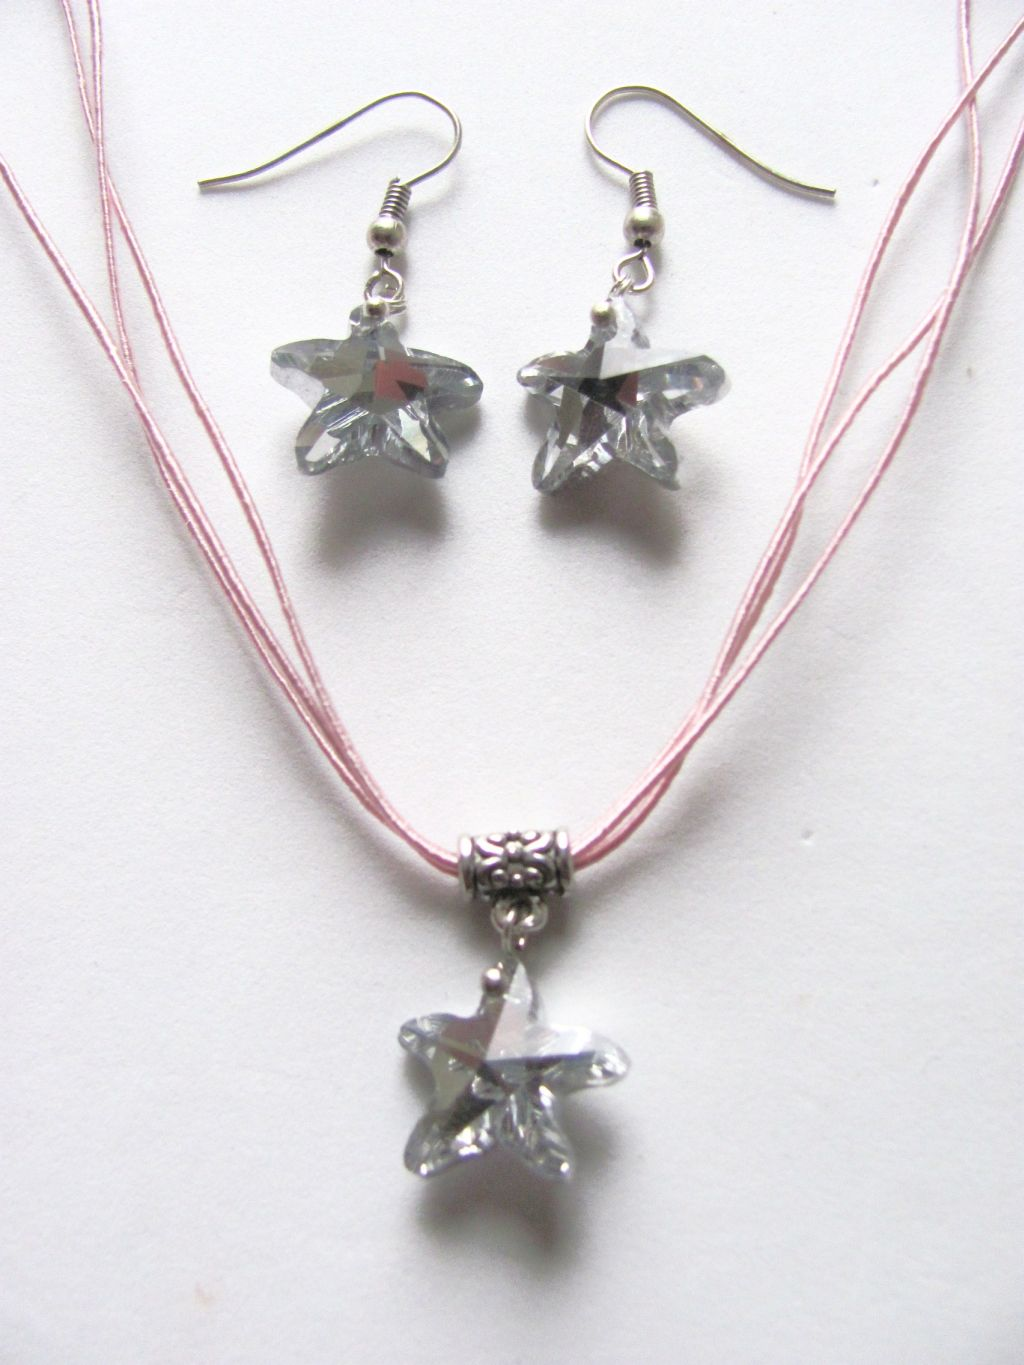 Genuine Crystal StarFish Sea Star Charm Pink Necklace Earrings Set